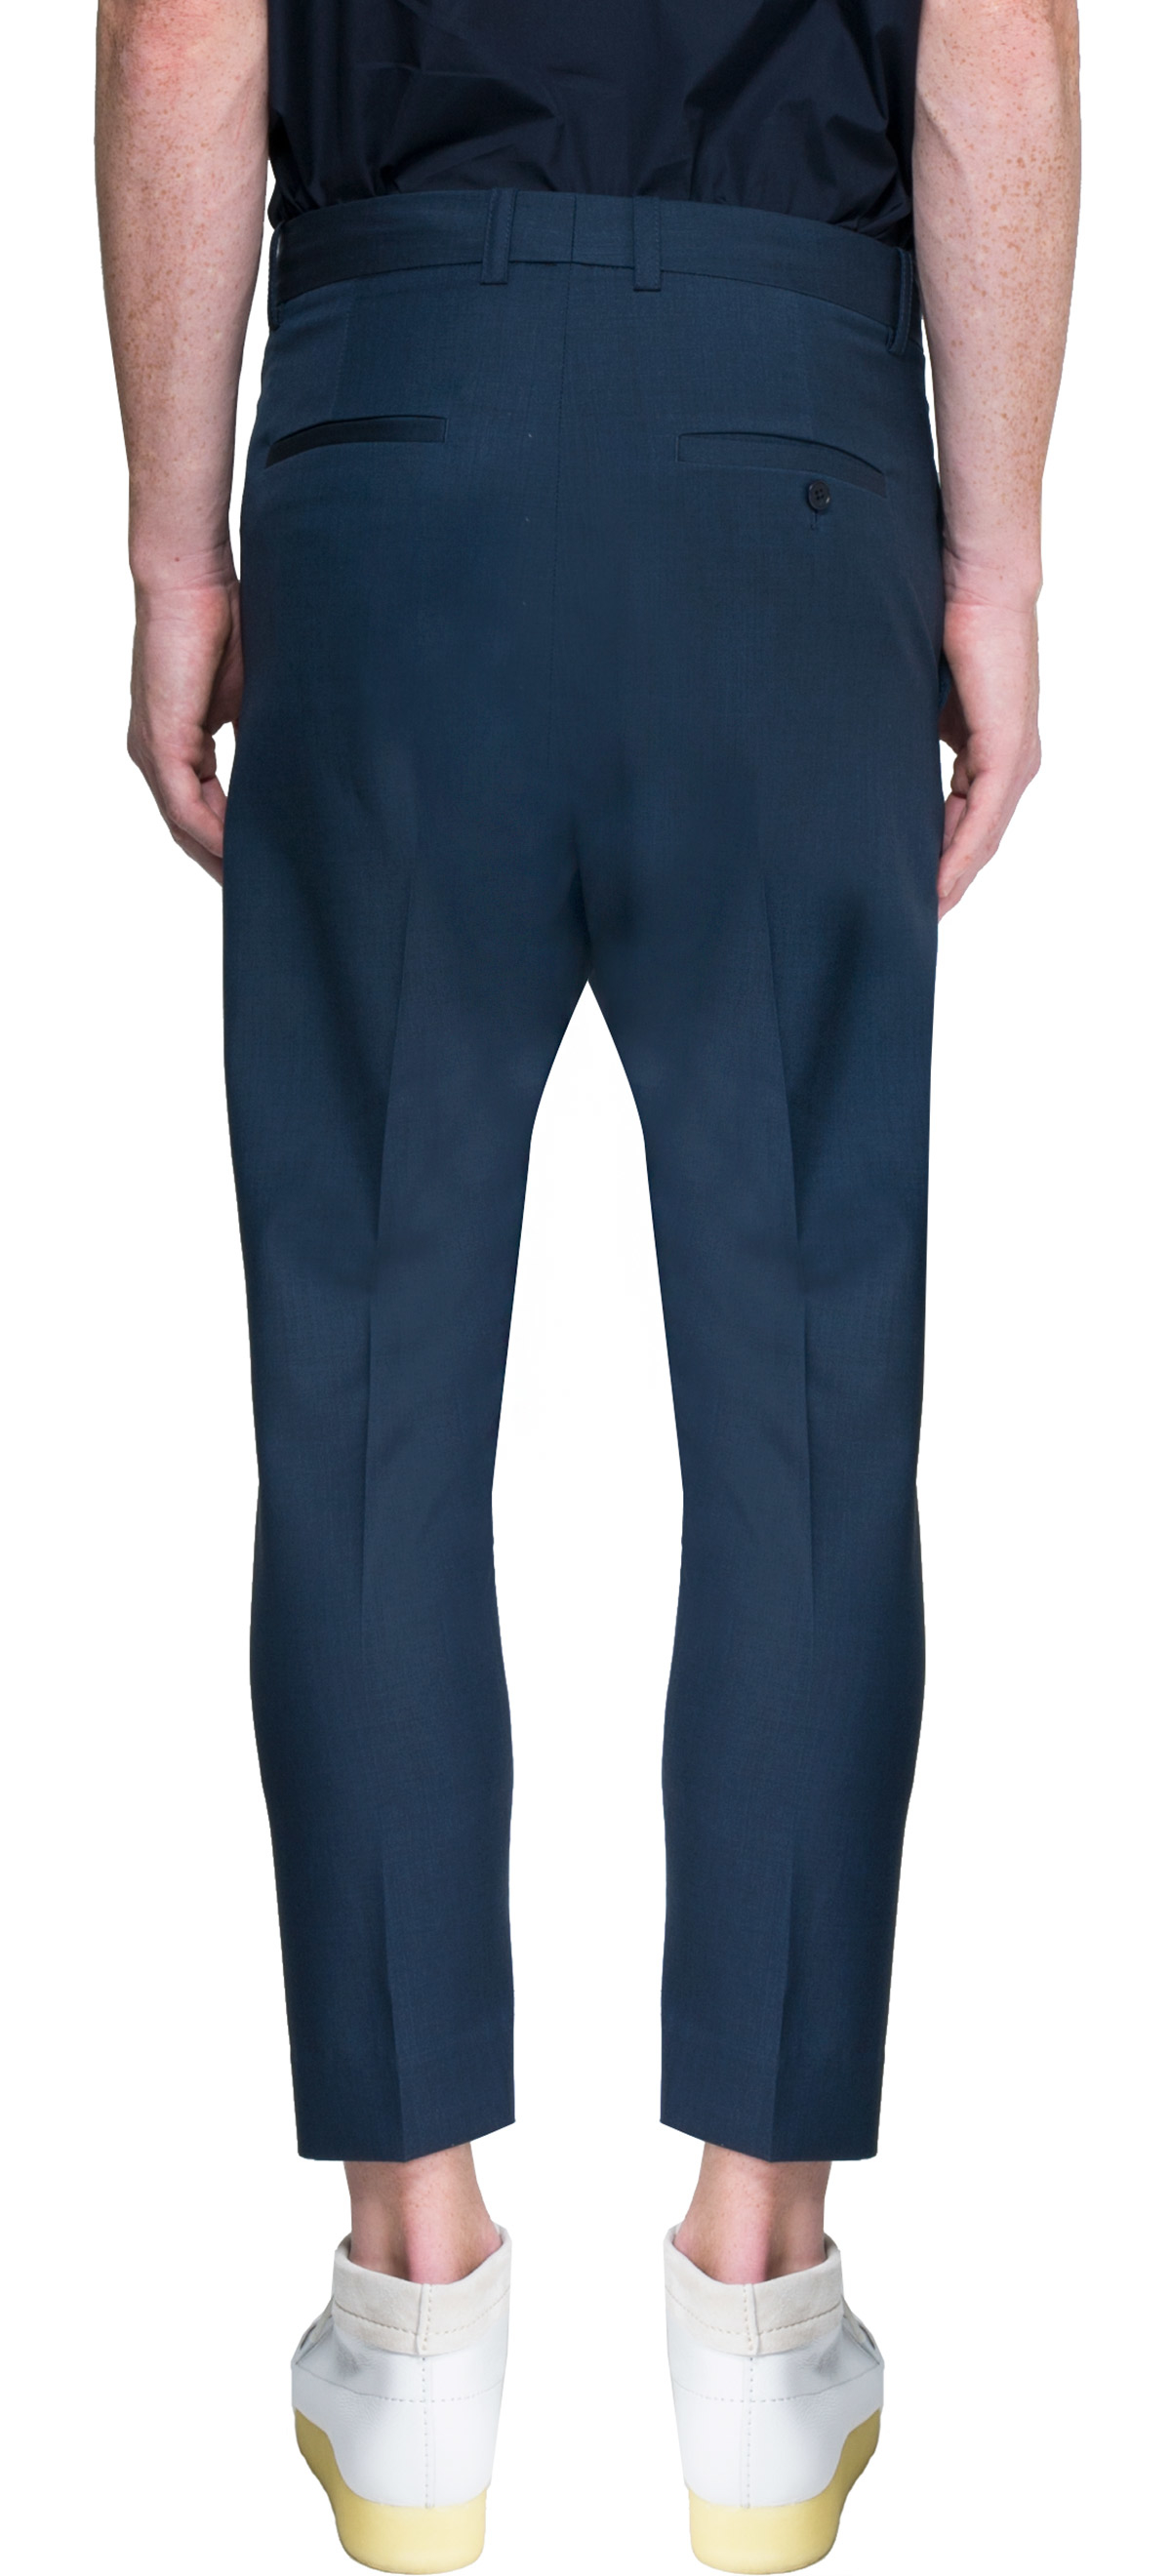 3.1 phillip lim Trousers in Blue for Men | Lyst